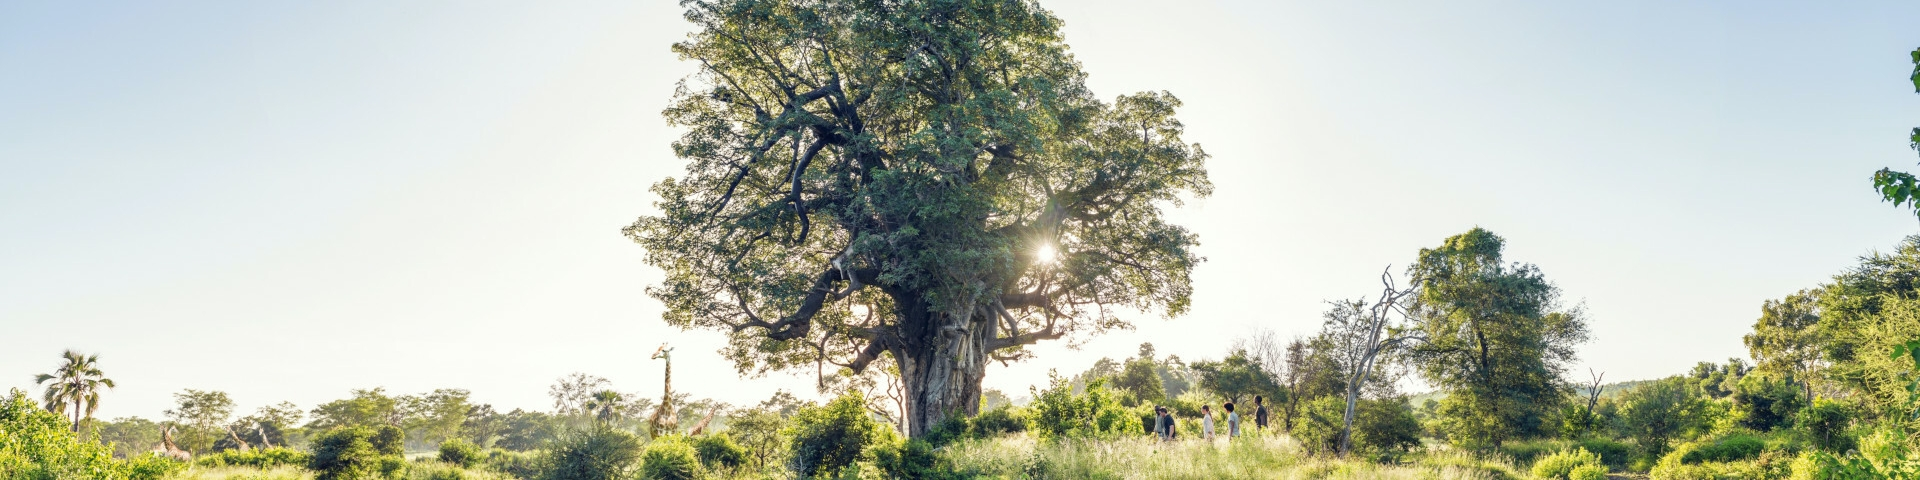 00 Banner Group on a guided walk through the bush with baobabs and giraffes